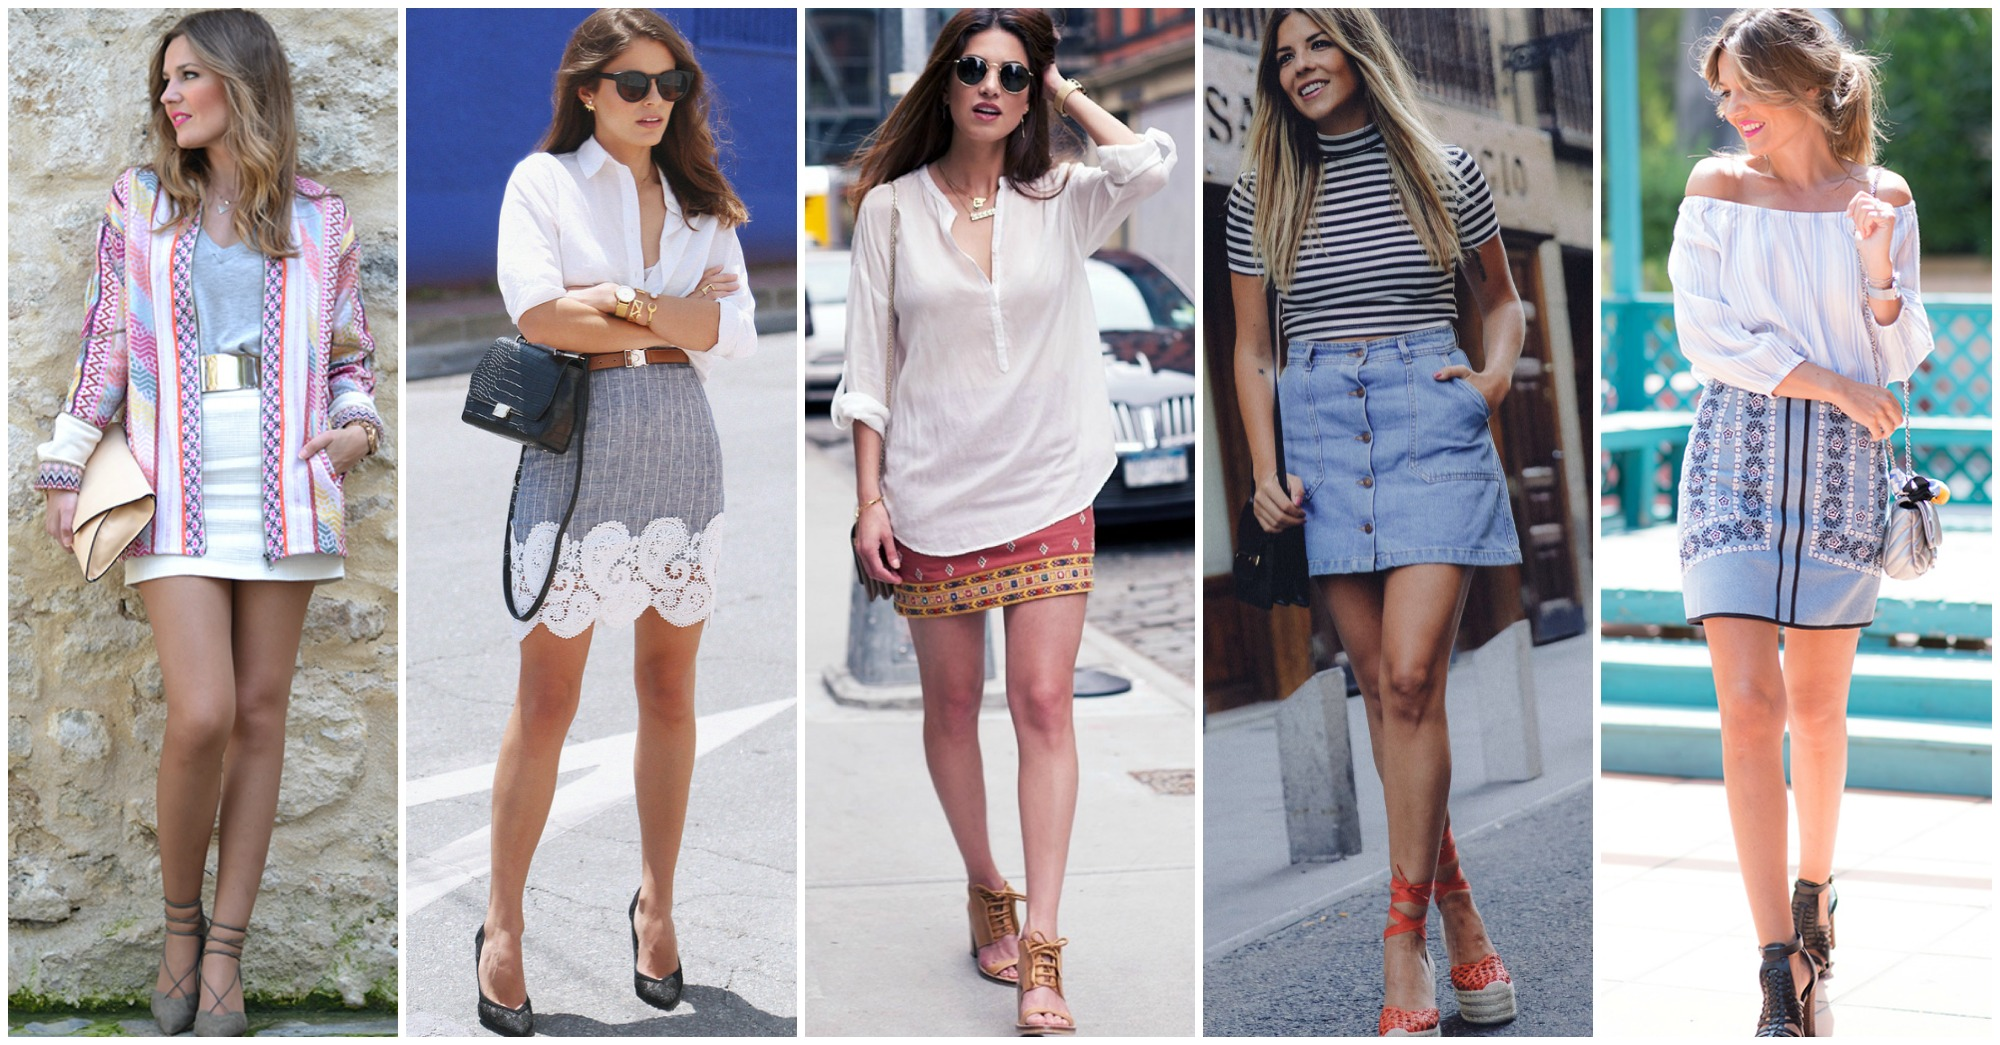 13 Fashionable Ways to Style Your Mini Skirts This Summer